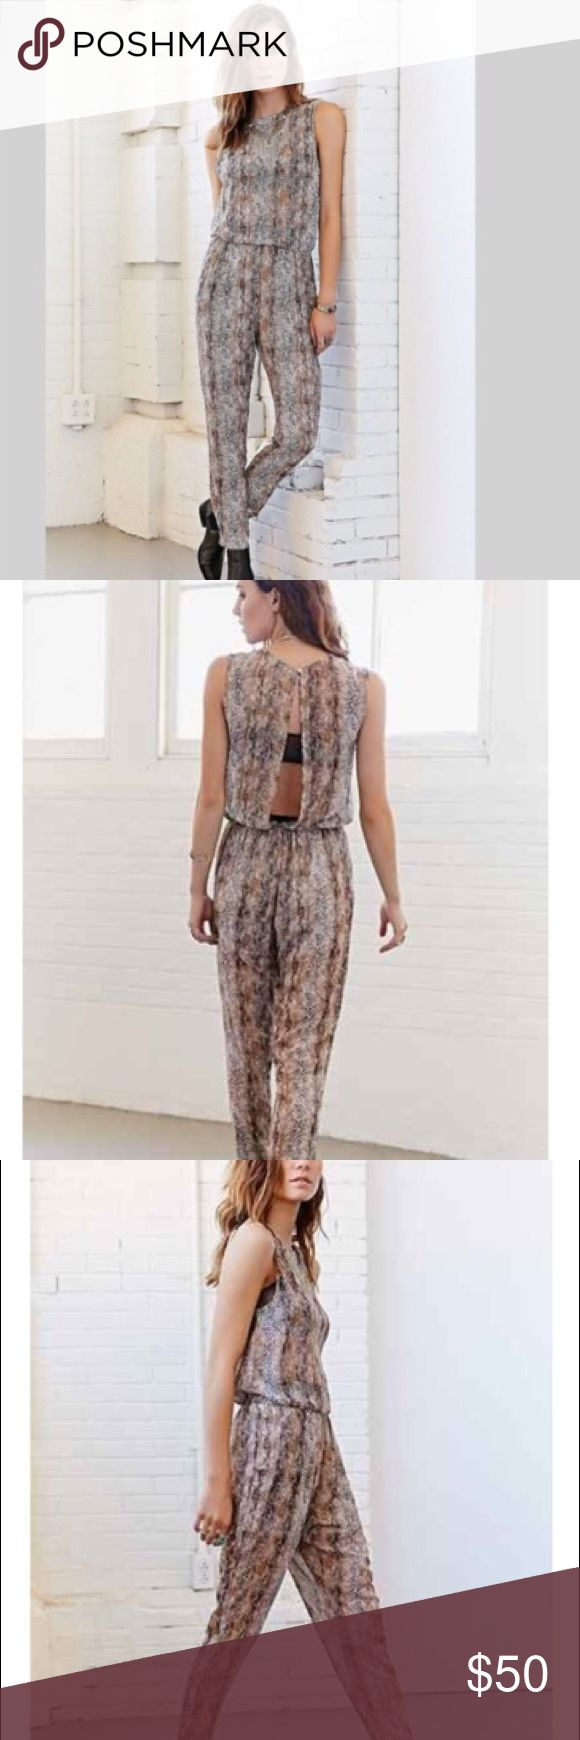 "ECOTE ~ UO brown snake print sheer jumpsuit size S ECOTE ~   ECOTE brand  From urban outfitters  Size small  New with tags attached  Brown color  Snake print pattern  Jumpsuit  Open back jumpsuit  Brown jumpsuit  Animal print jumpsuit  Sheer fabric  Front pleated waist  Elastic waist in back  Tapered legs  Side pockets  Bottom lined  Sheer top  Polyester fabric  Made in China   Flat measurements:  Length waist to hem 40"" Waist unstretched 14"" Bust 17"" Ecote Pants Jumpsuits & Rompers"